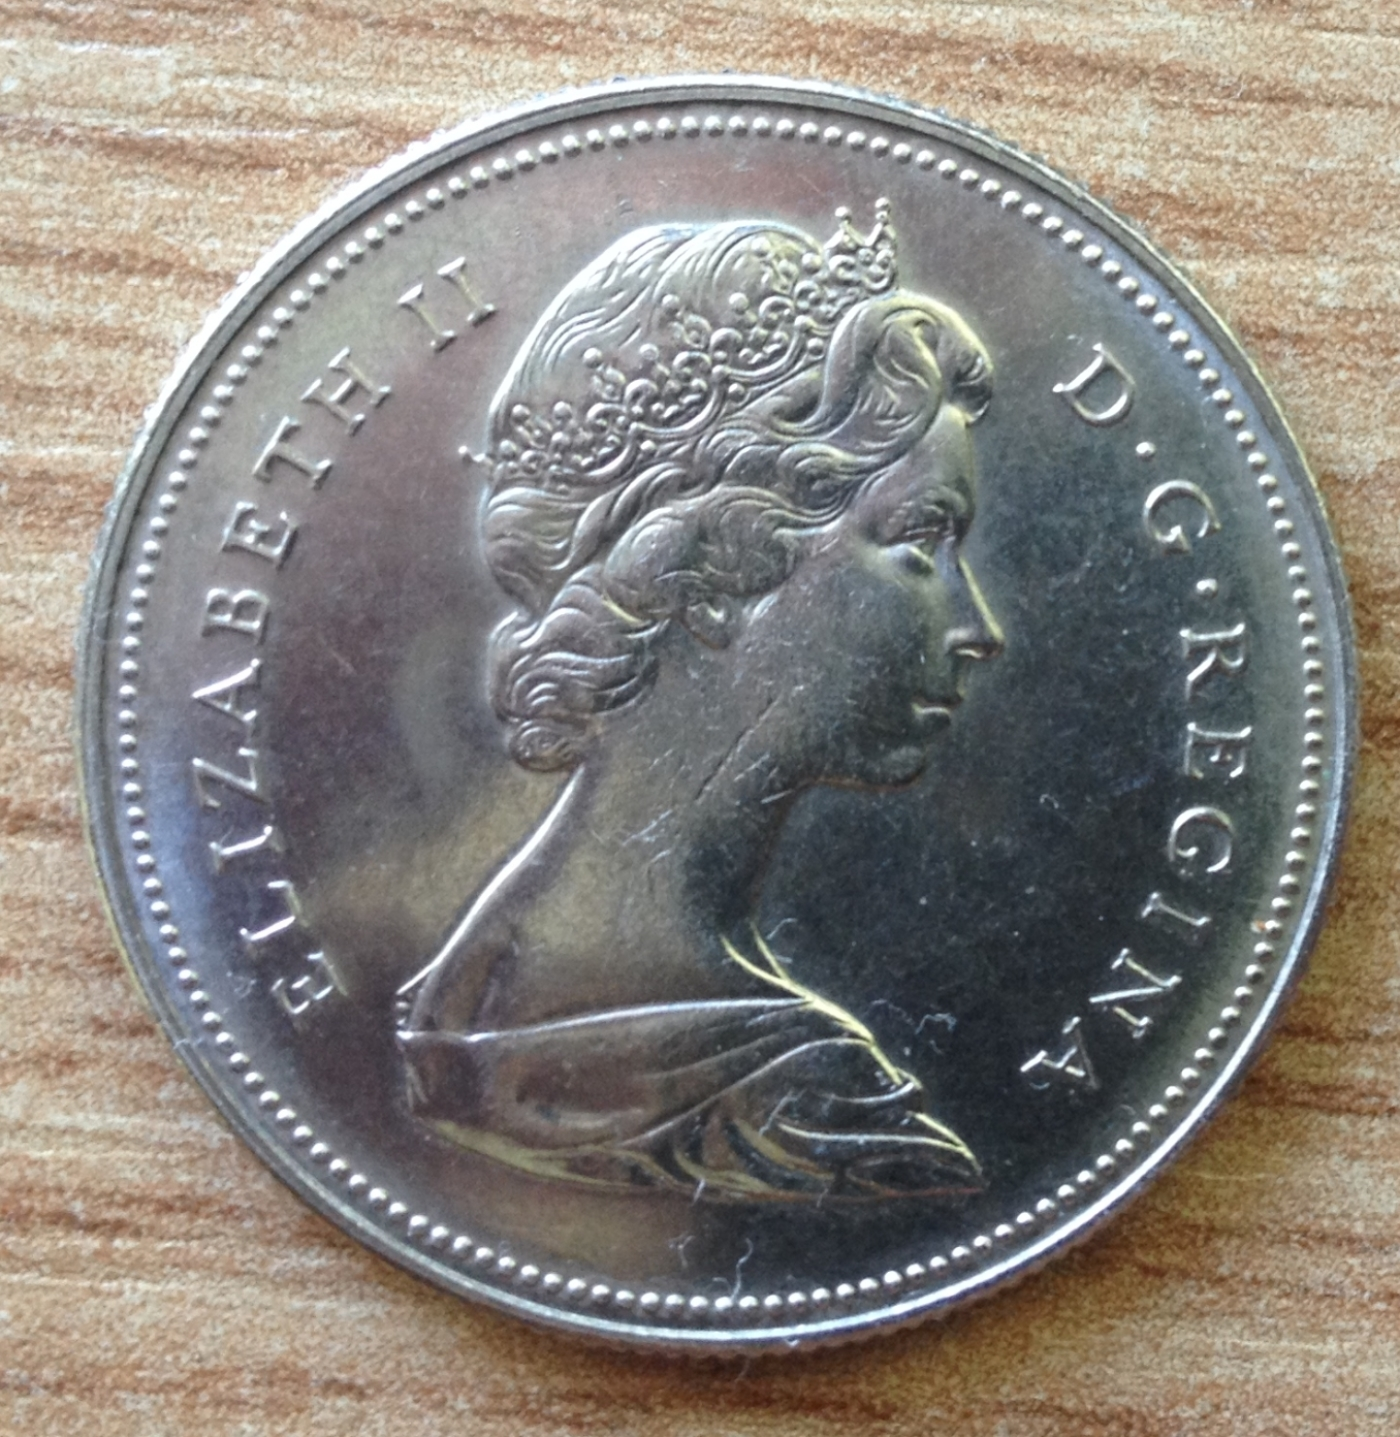 1973 CANADA 50 CENTS PROOF-LIKE COIN